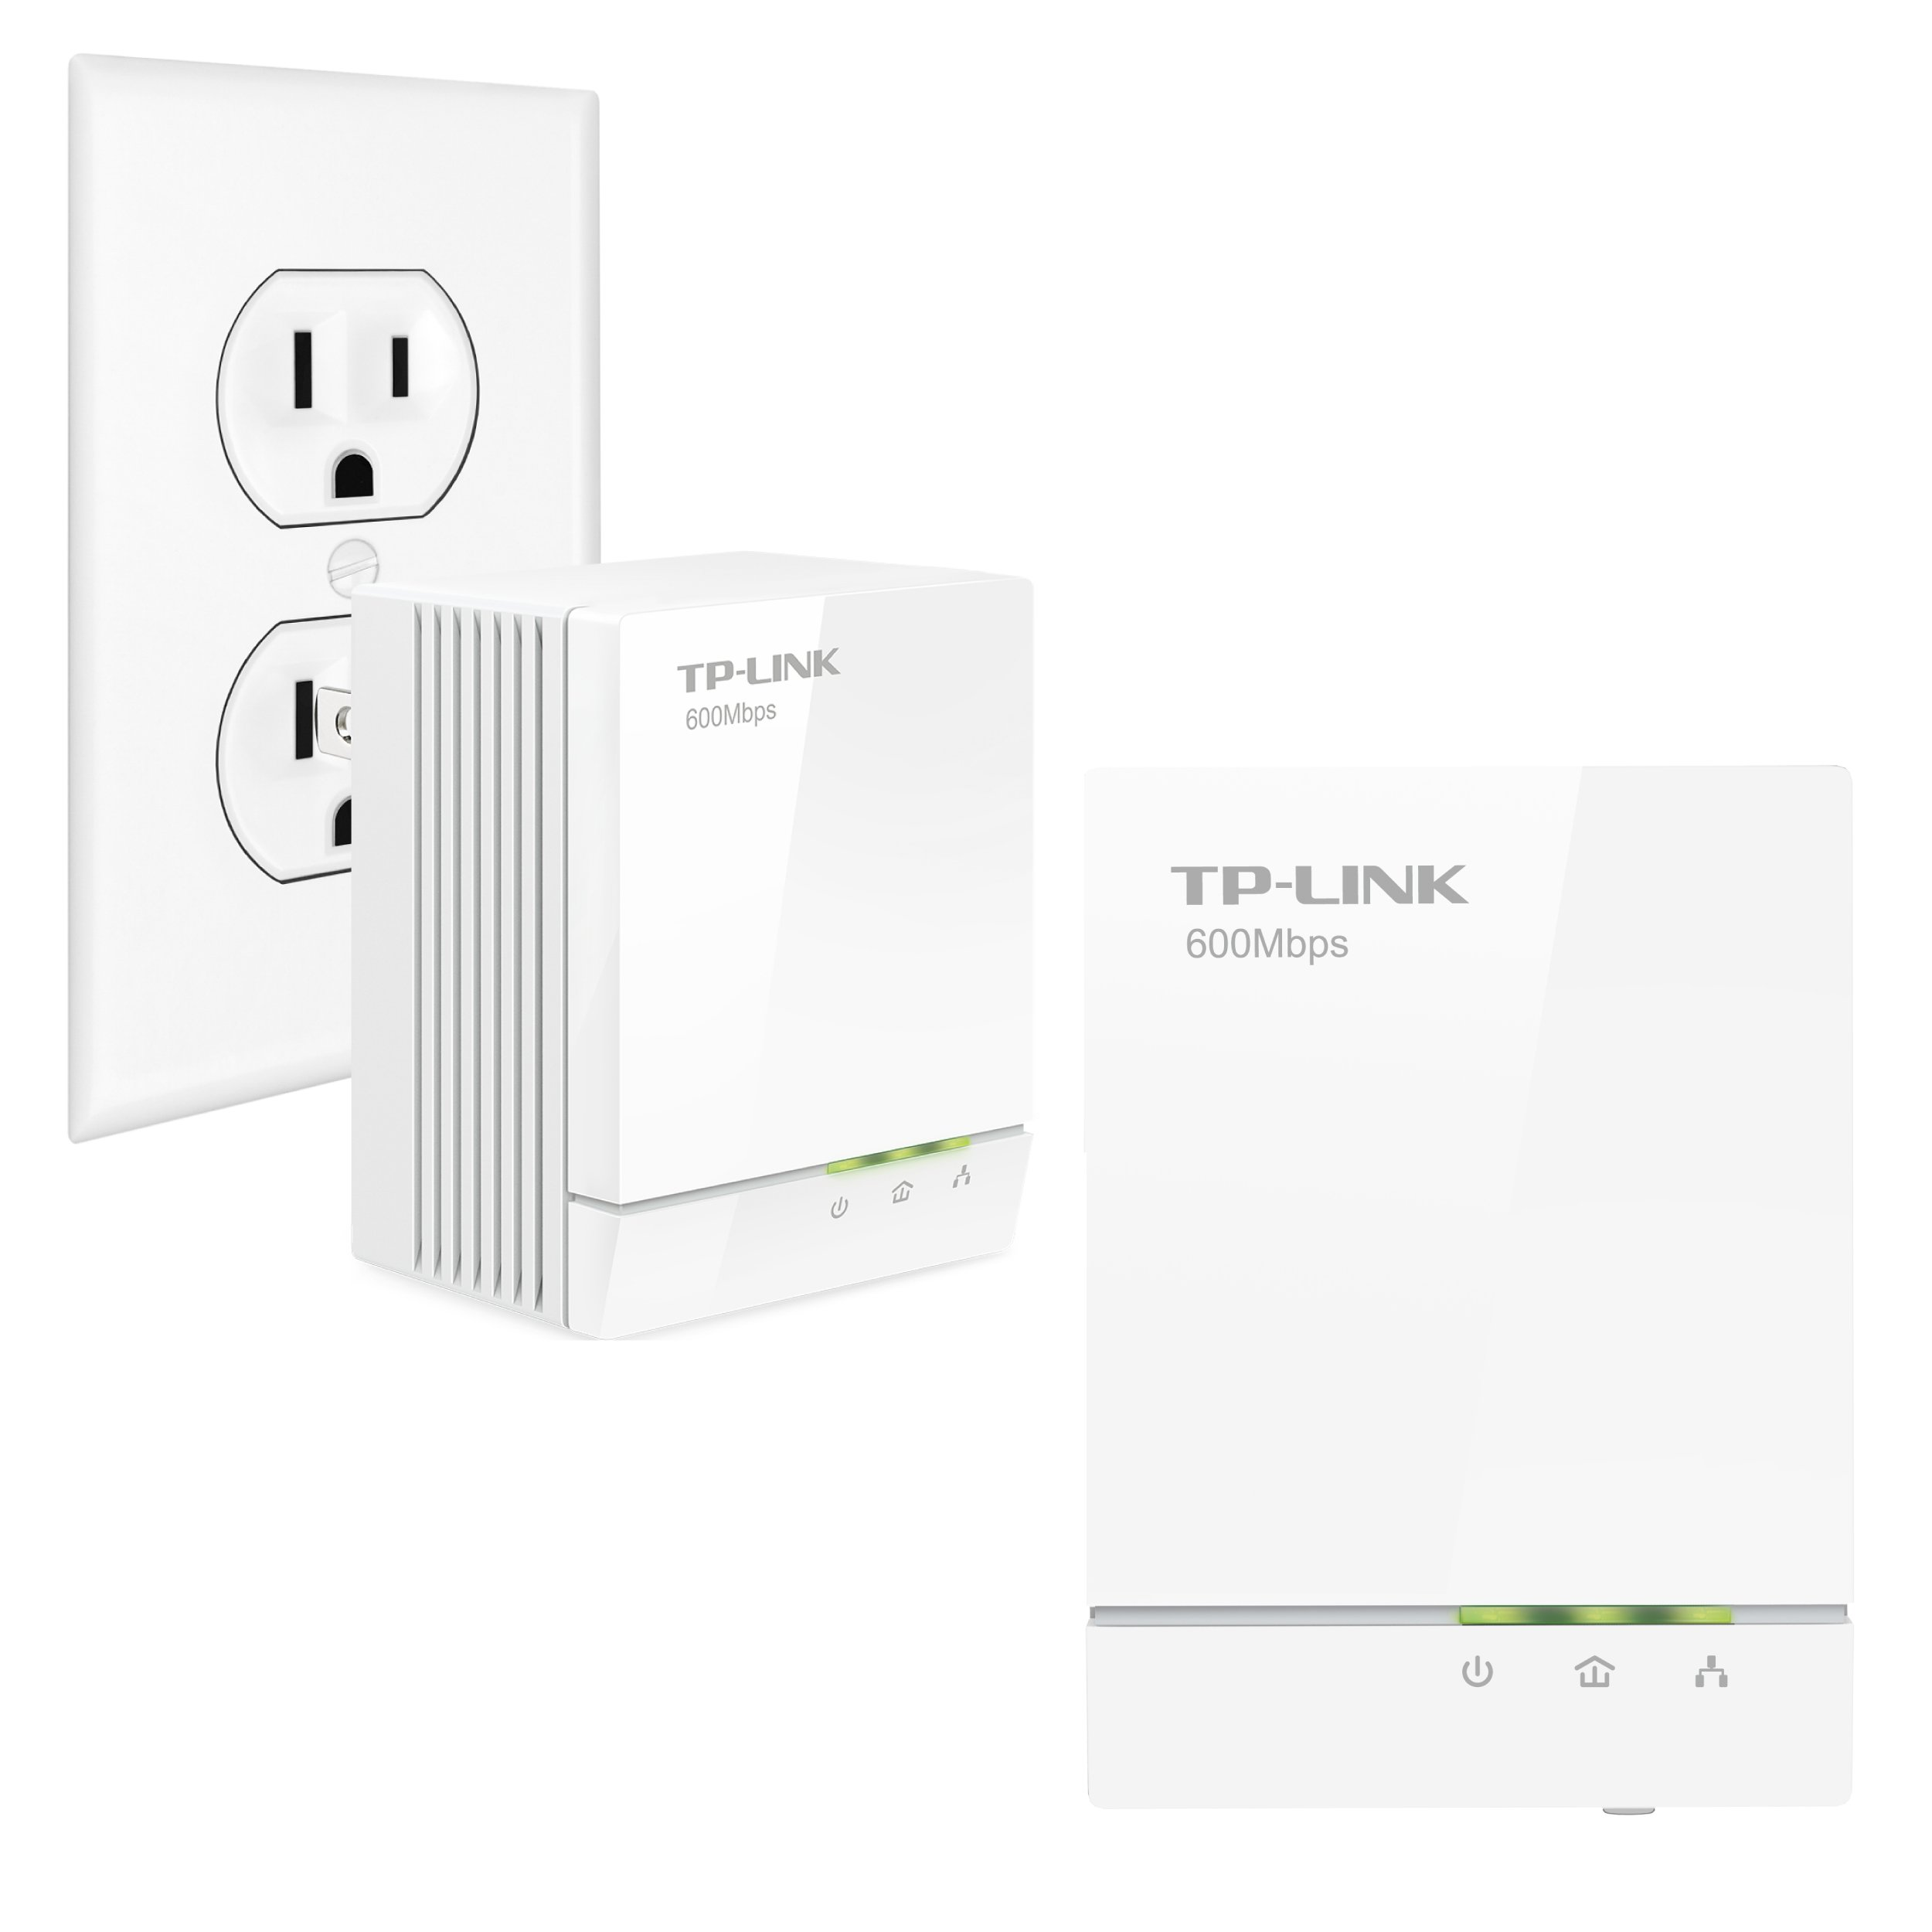 TP-Link AV600 Powerline Adapter Starter Kit, Up to 600Mbps, Gigabit Ports, Plug and Play, Power Saving Mode (TL-PA6010KIT) by TP-Link